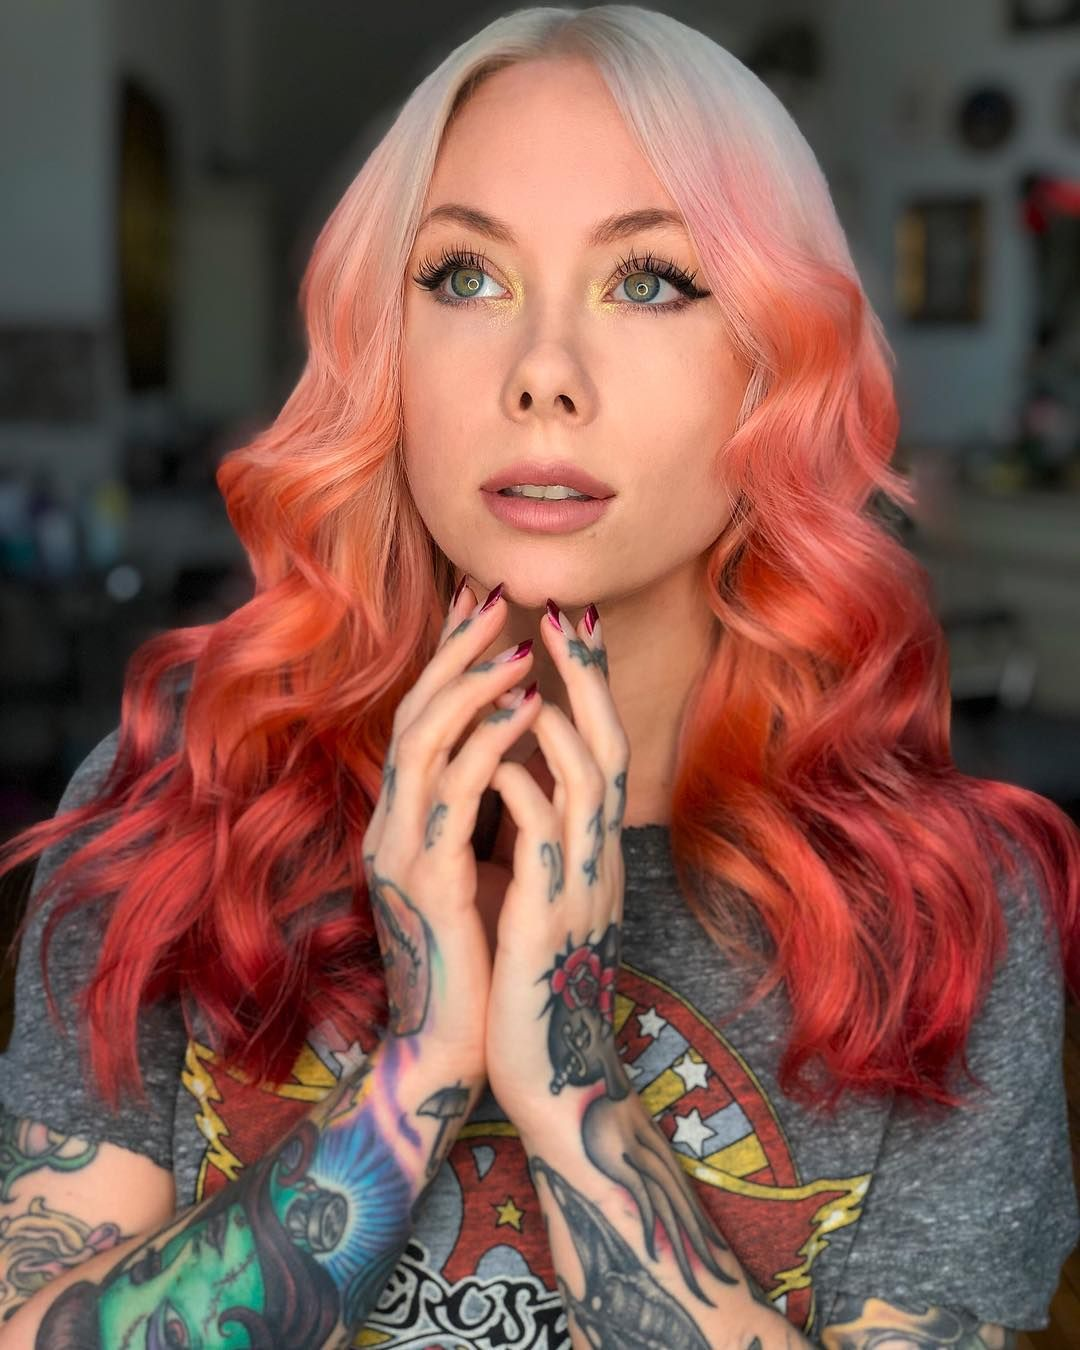 "07b05ebcd Megan Massacre on Instagram: ""More new hair photos because I'm in ❤ ❤ ❤  color by @kayla_boyer cut by @diegomiranda ✂ Nails by @nichole_osorio """